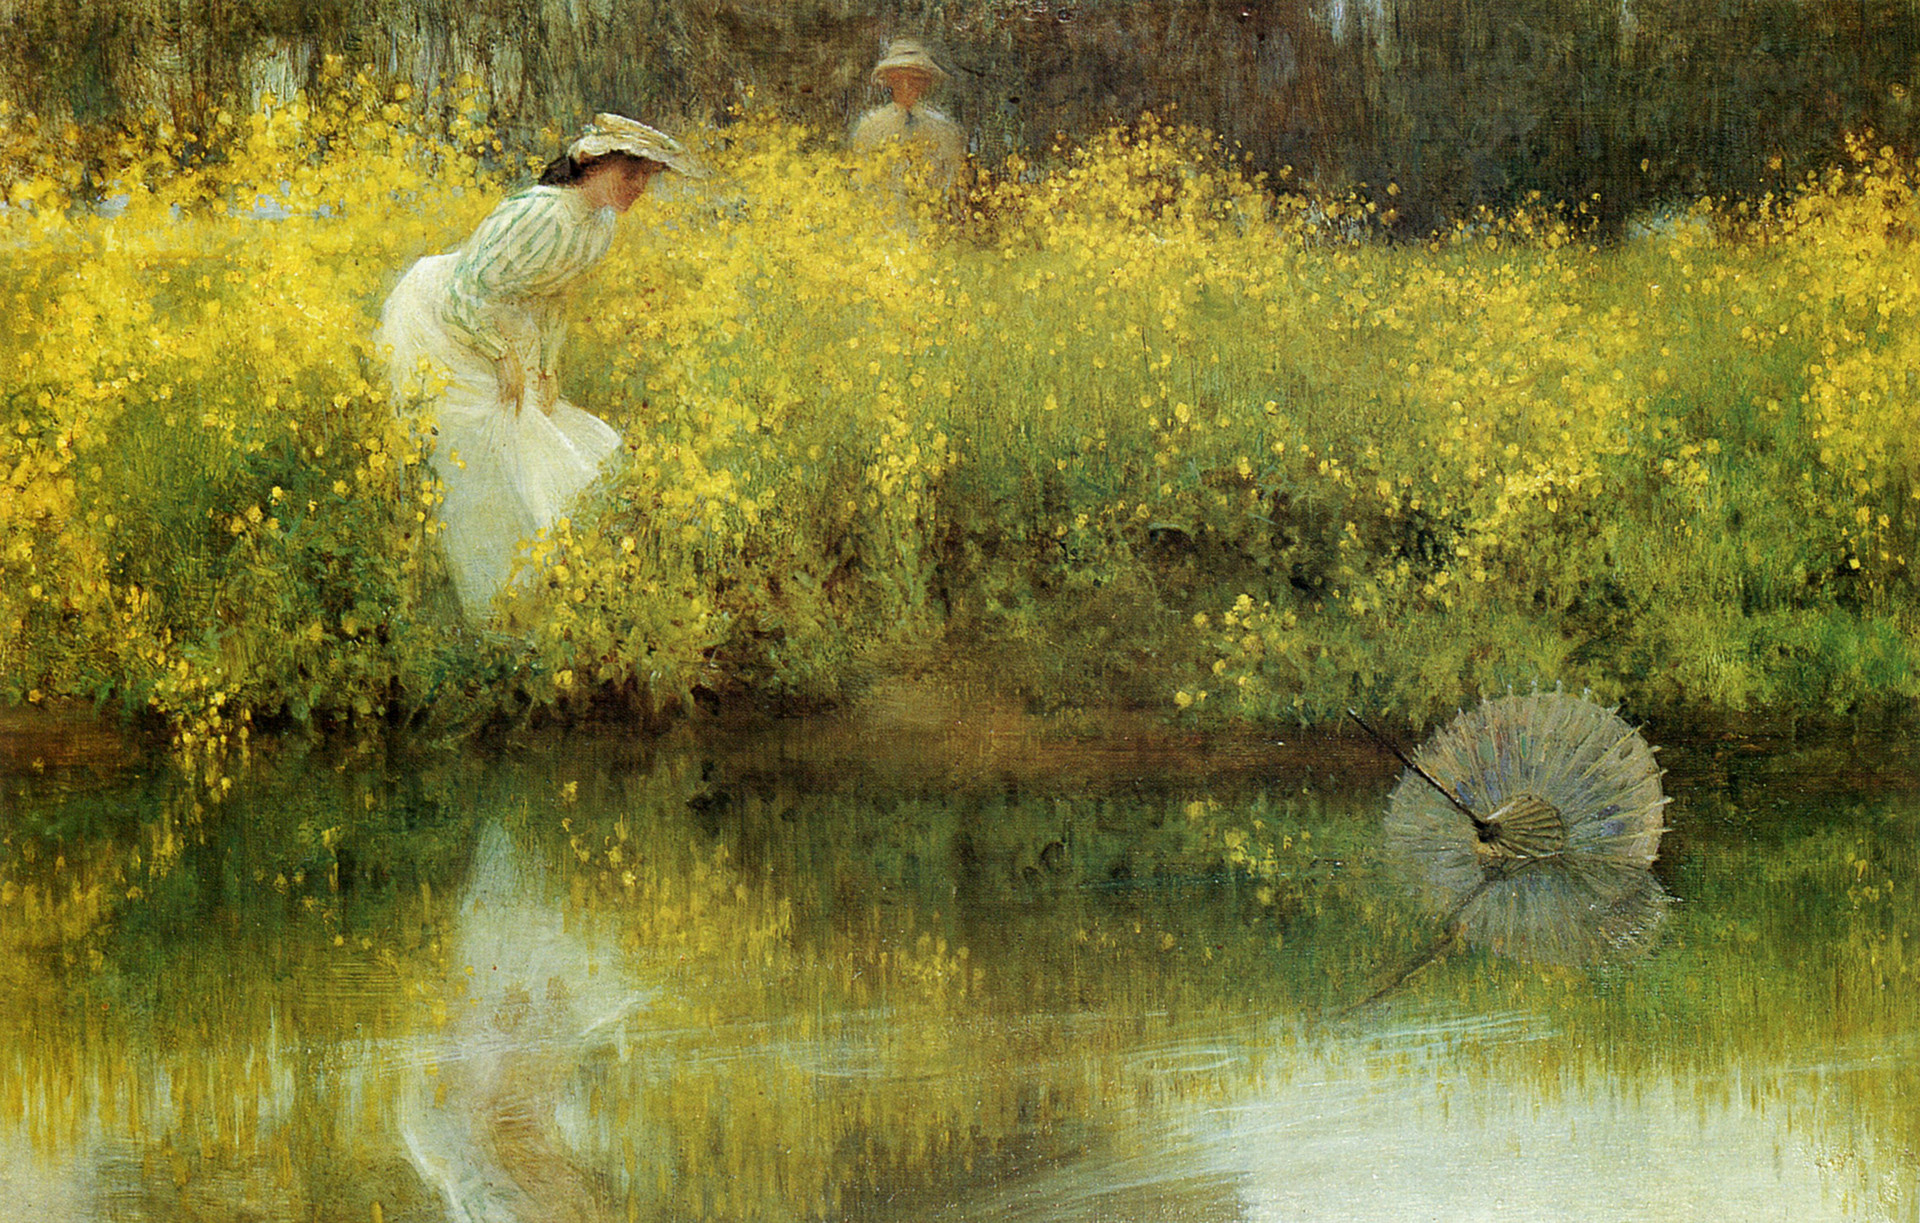 """""""Summer afternoon - summer afternoon; to me those have always been the two most beautiful words in the English language."""" - Henry James (1843-1916) In Jeopardy, 1902 by Arthur Hacker (1858-1919)"""